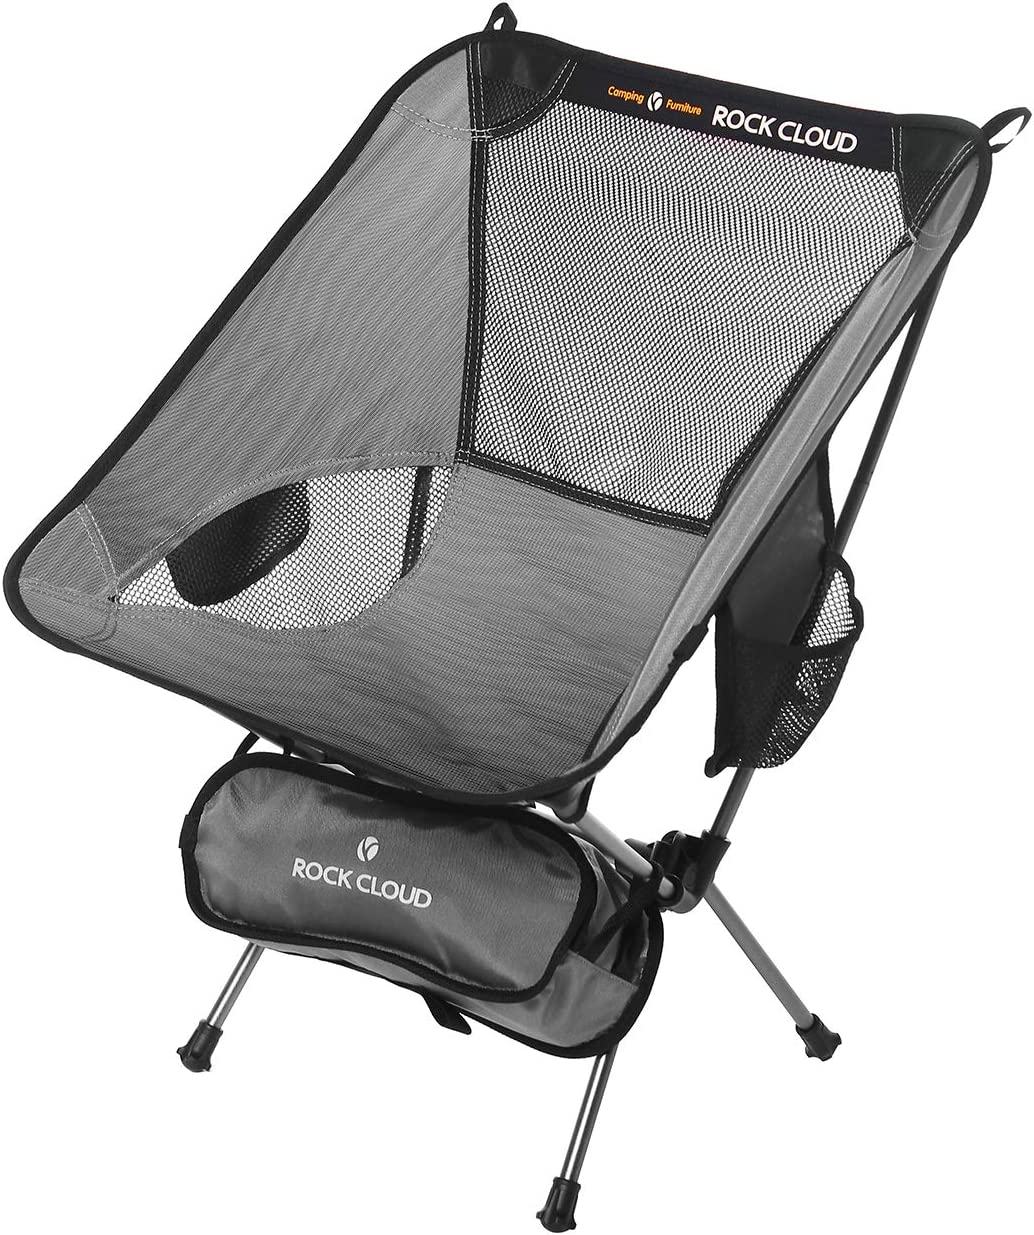 Rock Cloud Ultralight Camping Chair Portable Folding Chairs Outdoor for Camp Hiking Backpacking Lawn Beach Sports